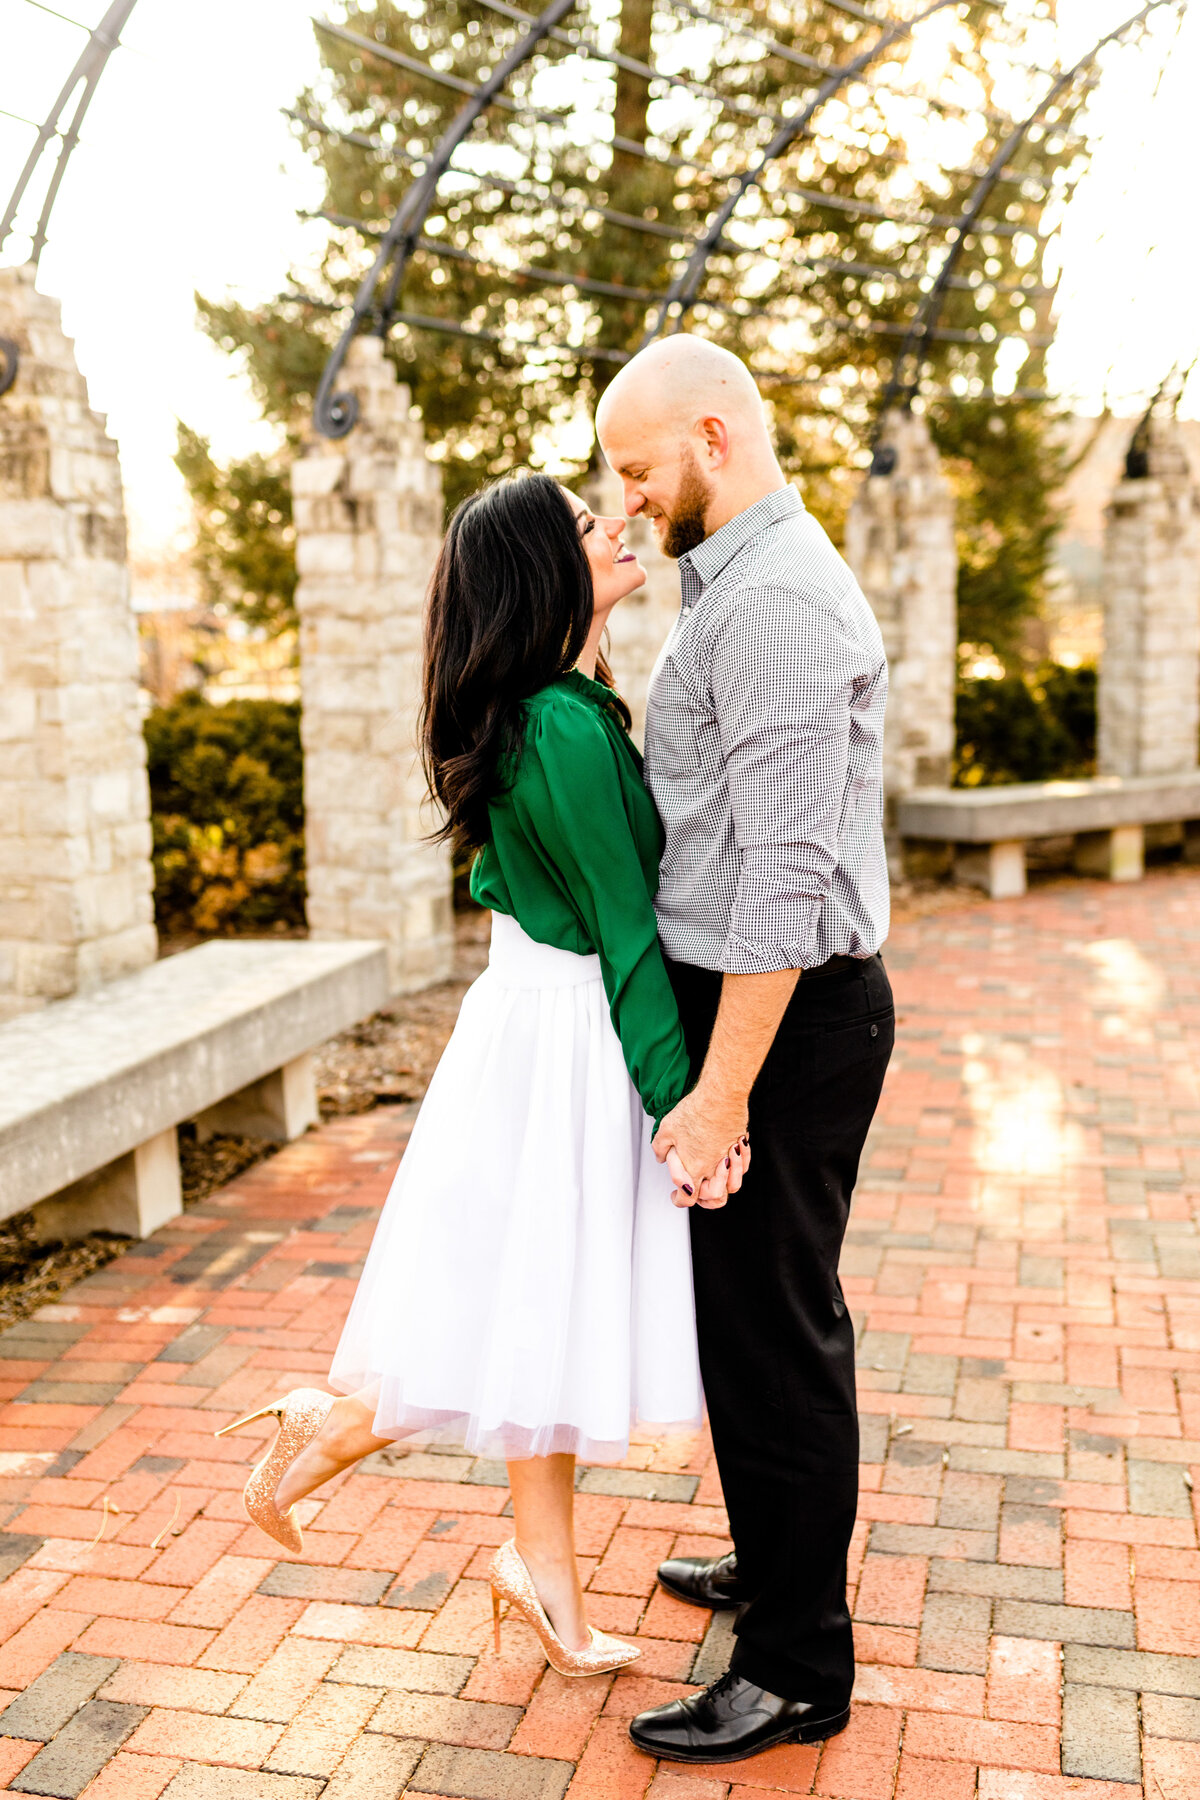 Caitlin and Luke Photography Wedding Engagement Luxury Illinois Destination Colorful Bright Joyful Cheerful Photographer 399